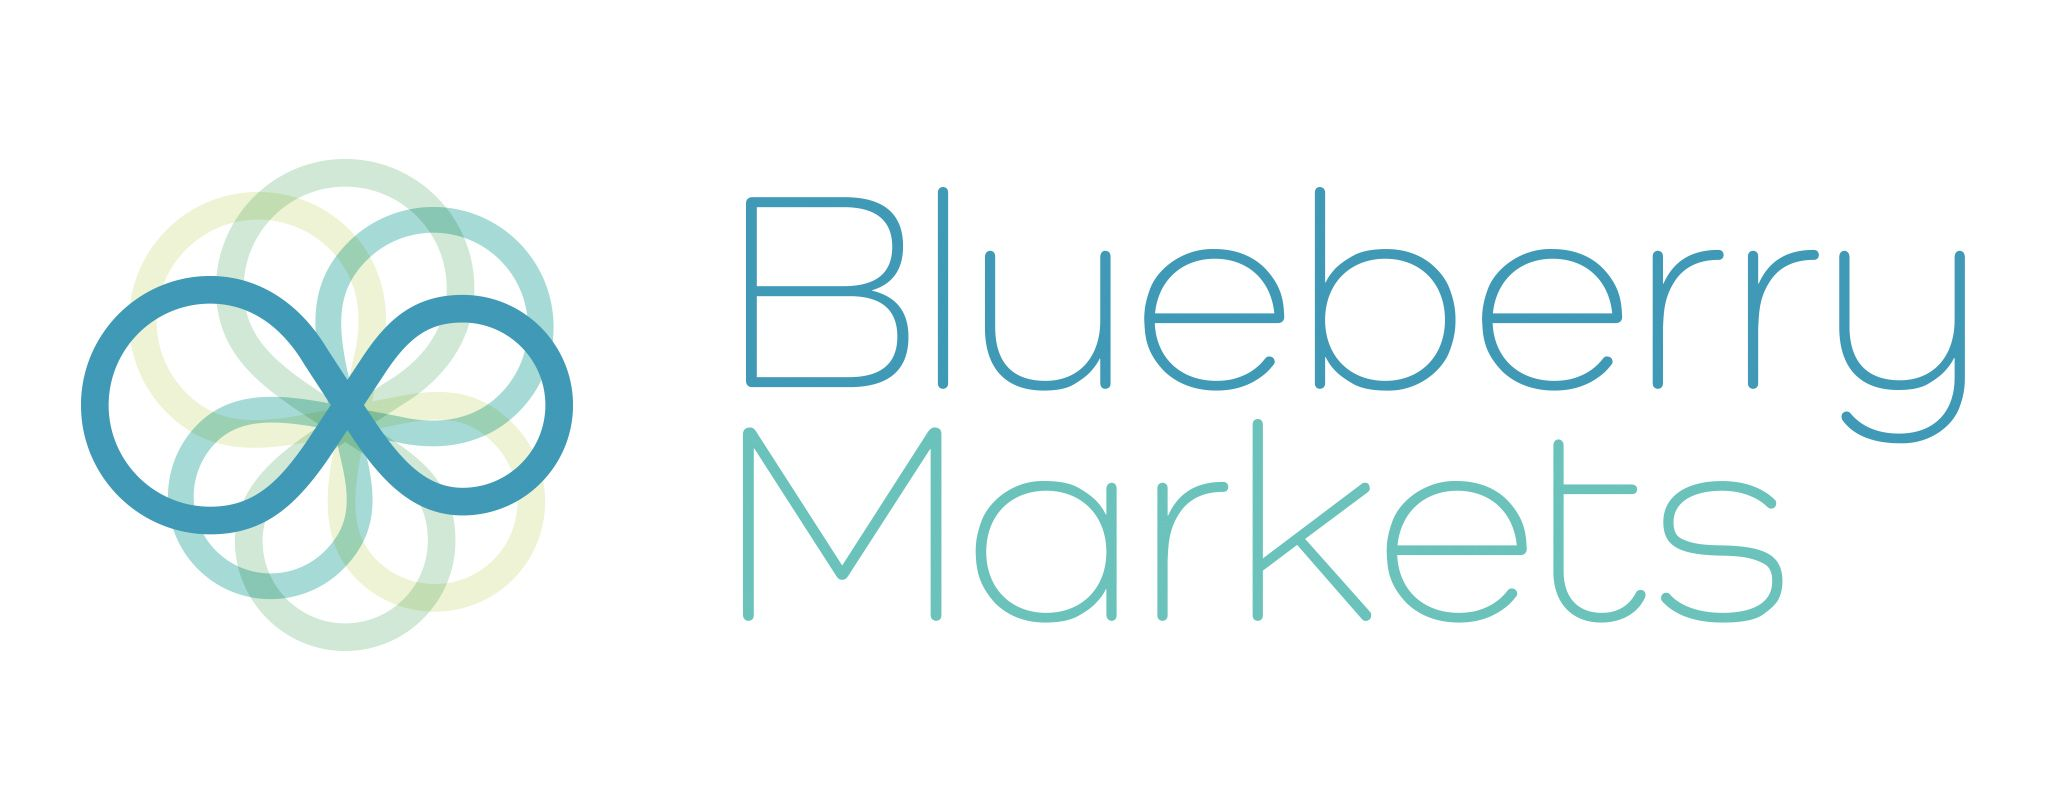 BlueberryMarkets Logo